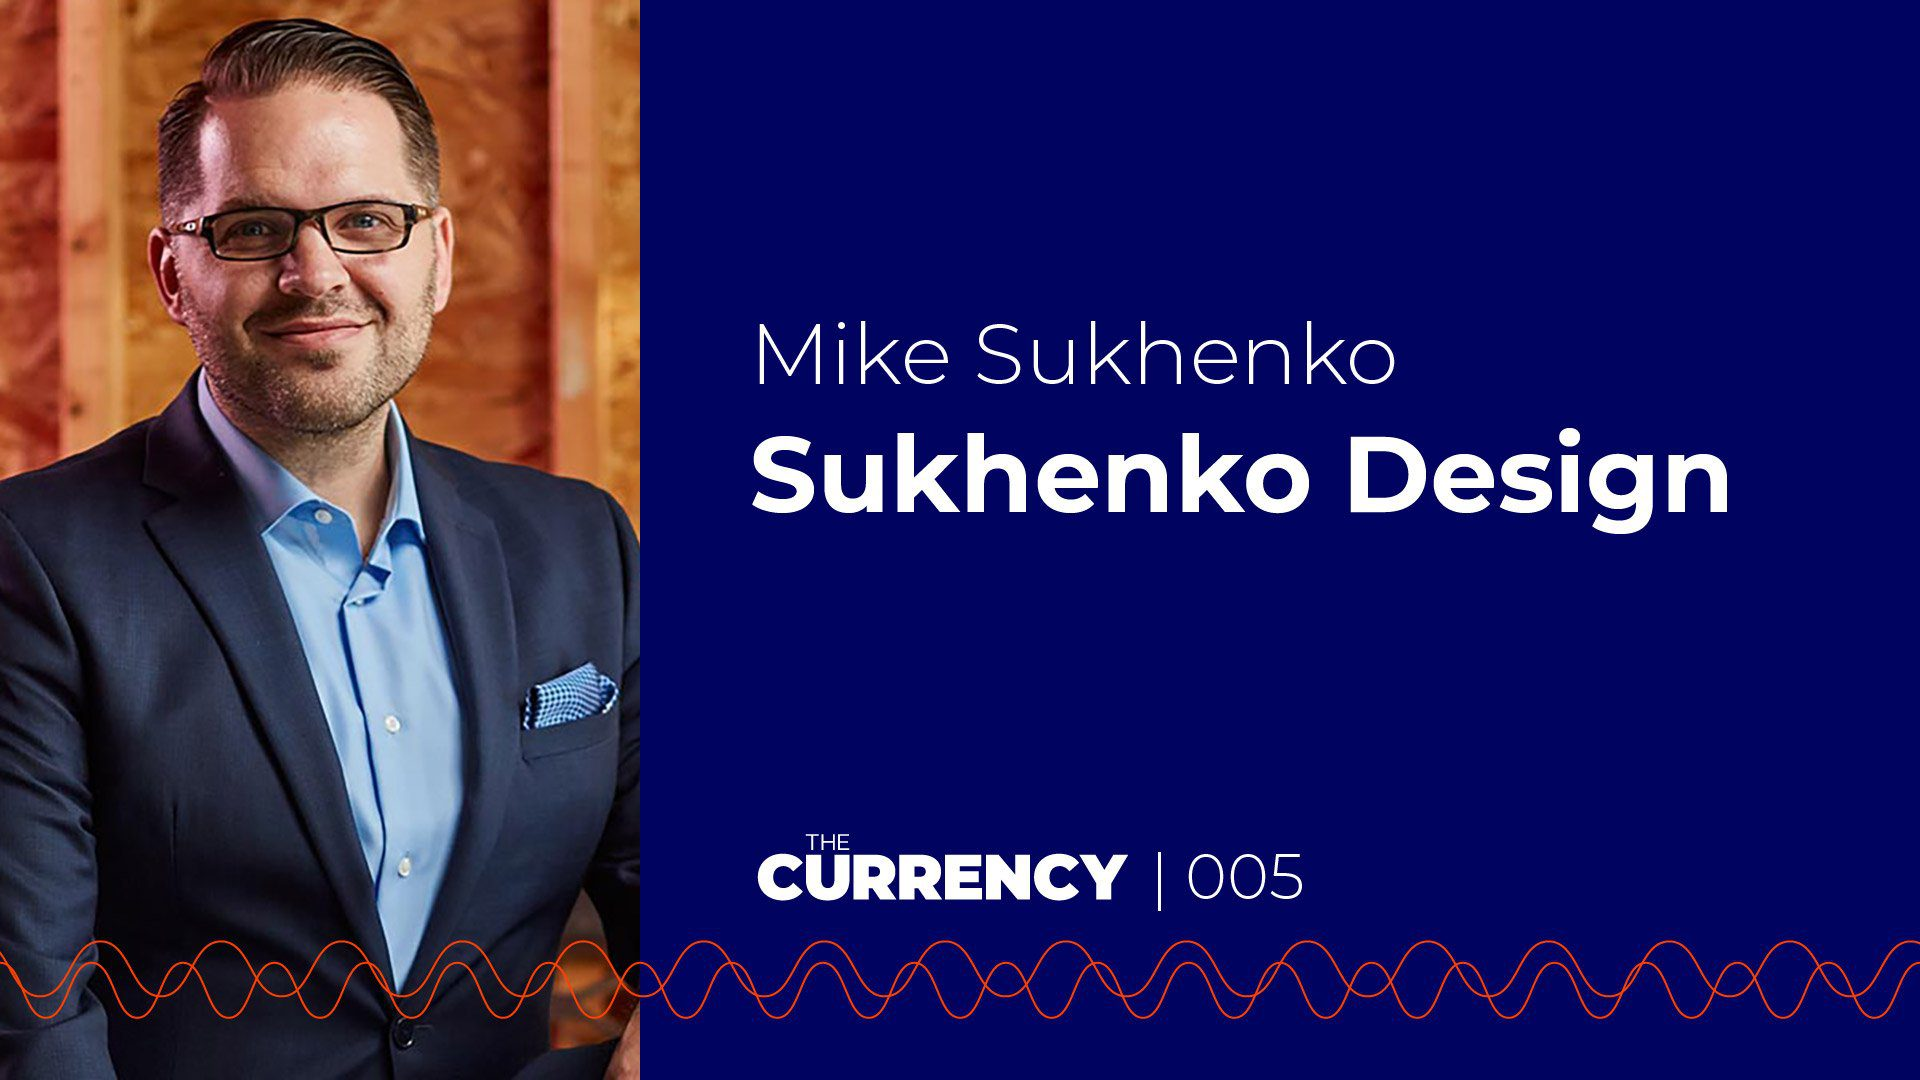 The Currency: [005] Mike Sukhenko & Sukhenko Design